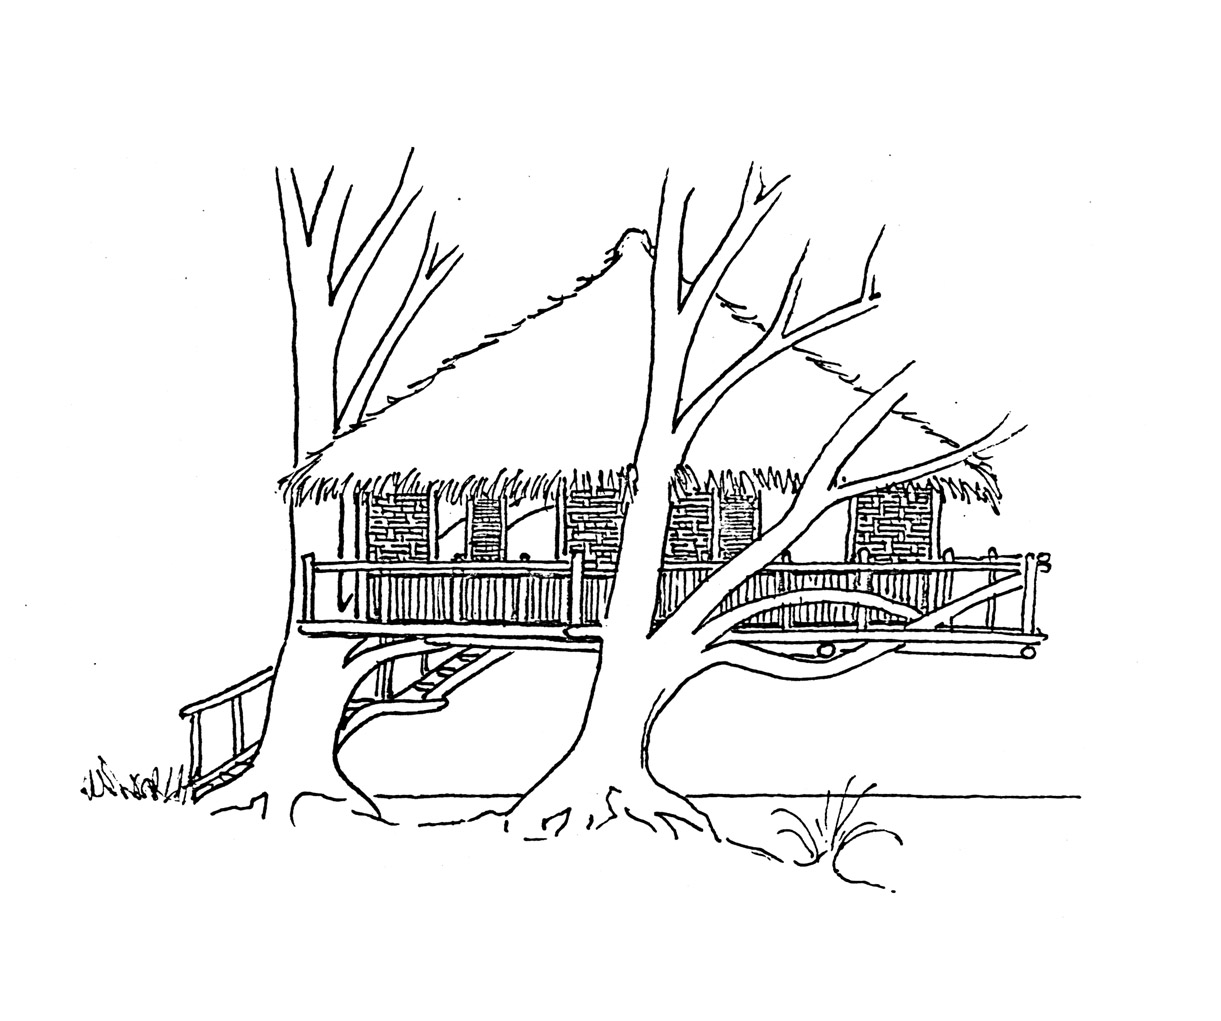 Beach house drawing at free for personal for Beach house drawing